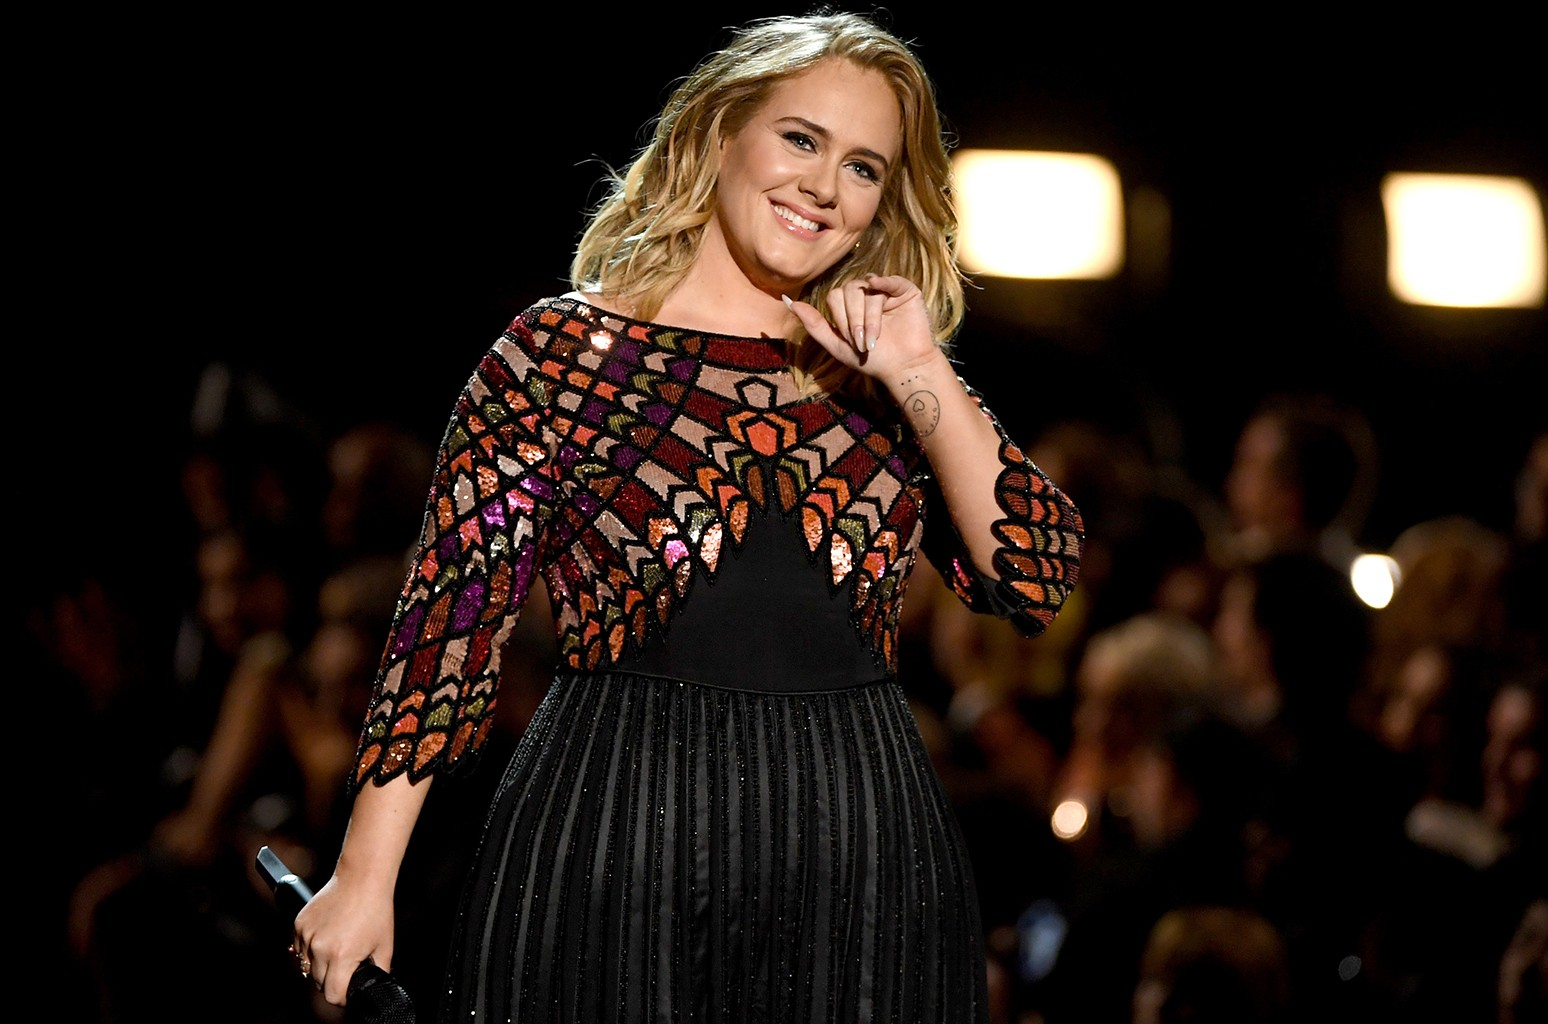 Adele performs during The 59th Grammy Awards at Staples Center on Feb. 12, 2017 in Los Angeles.